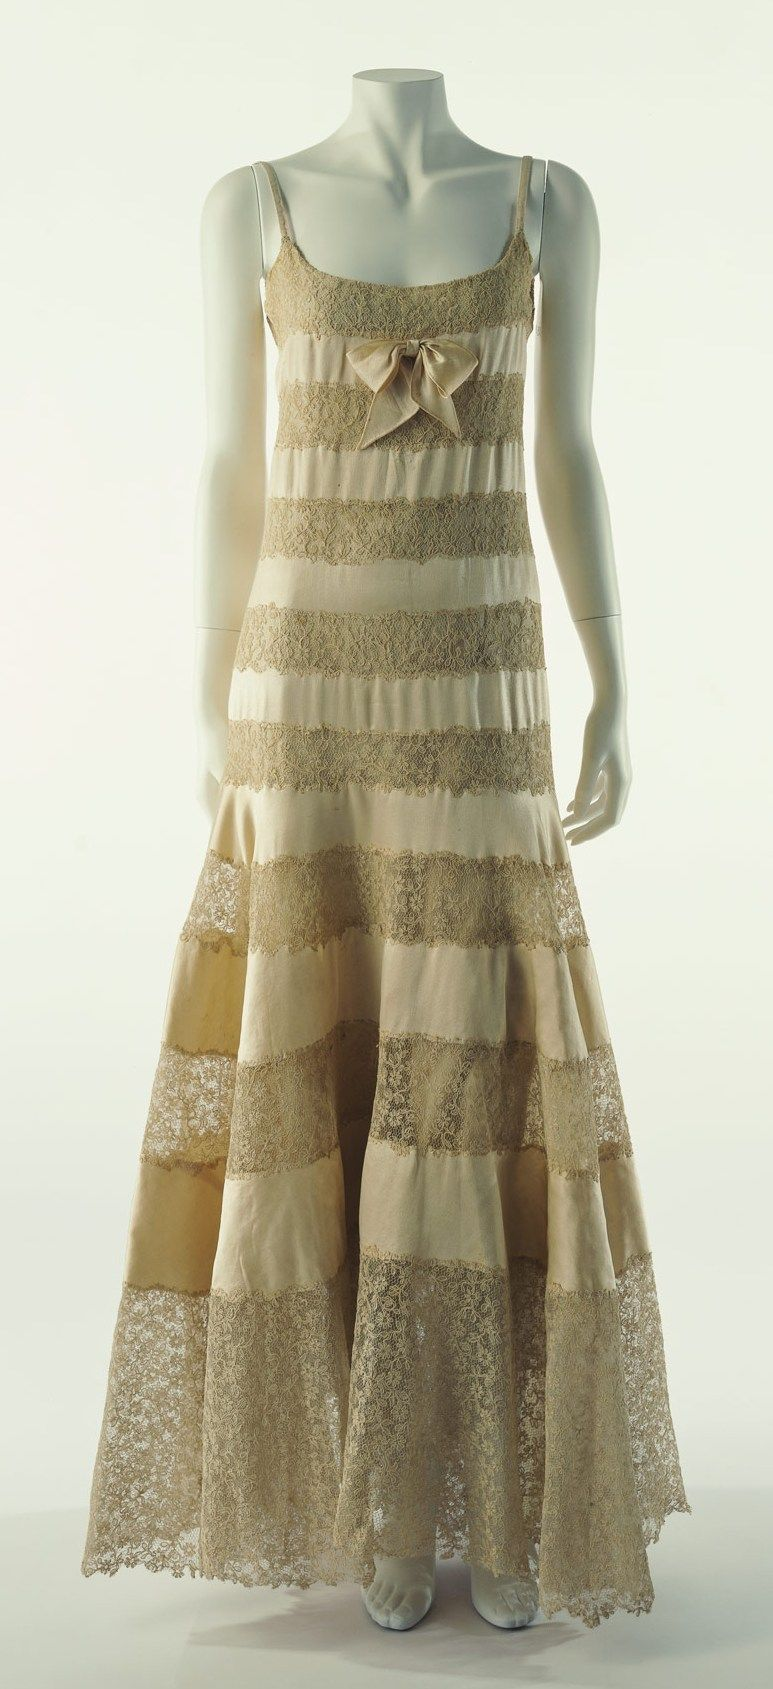 Detail Of Collections 1930s Kci Digital Archives Fashion Vintage Dresses 1930s Fashion